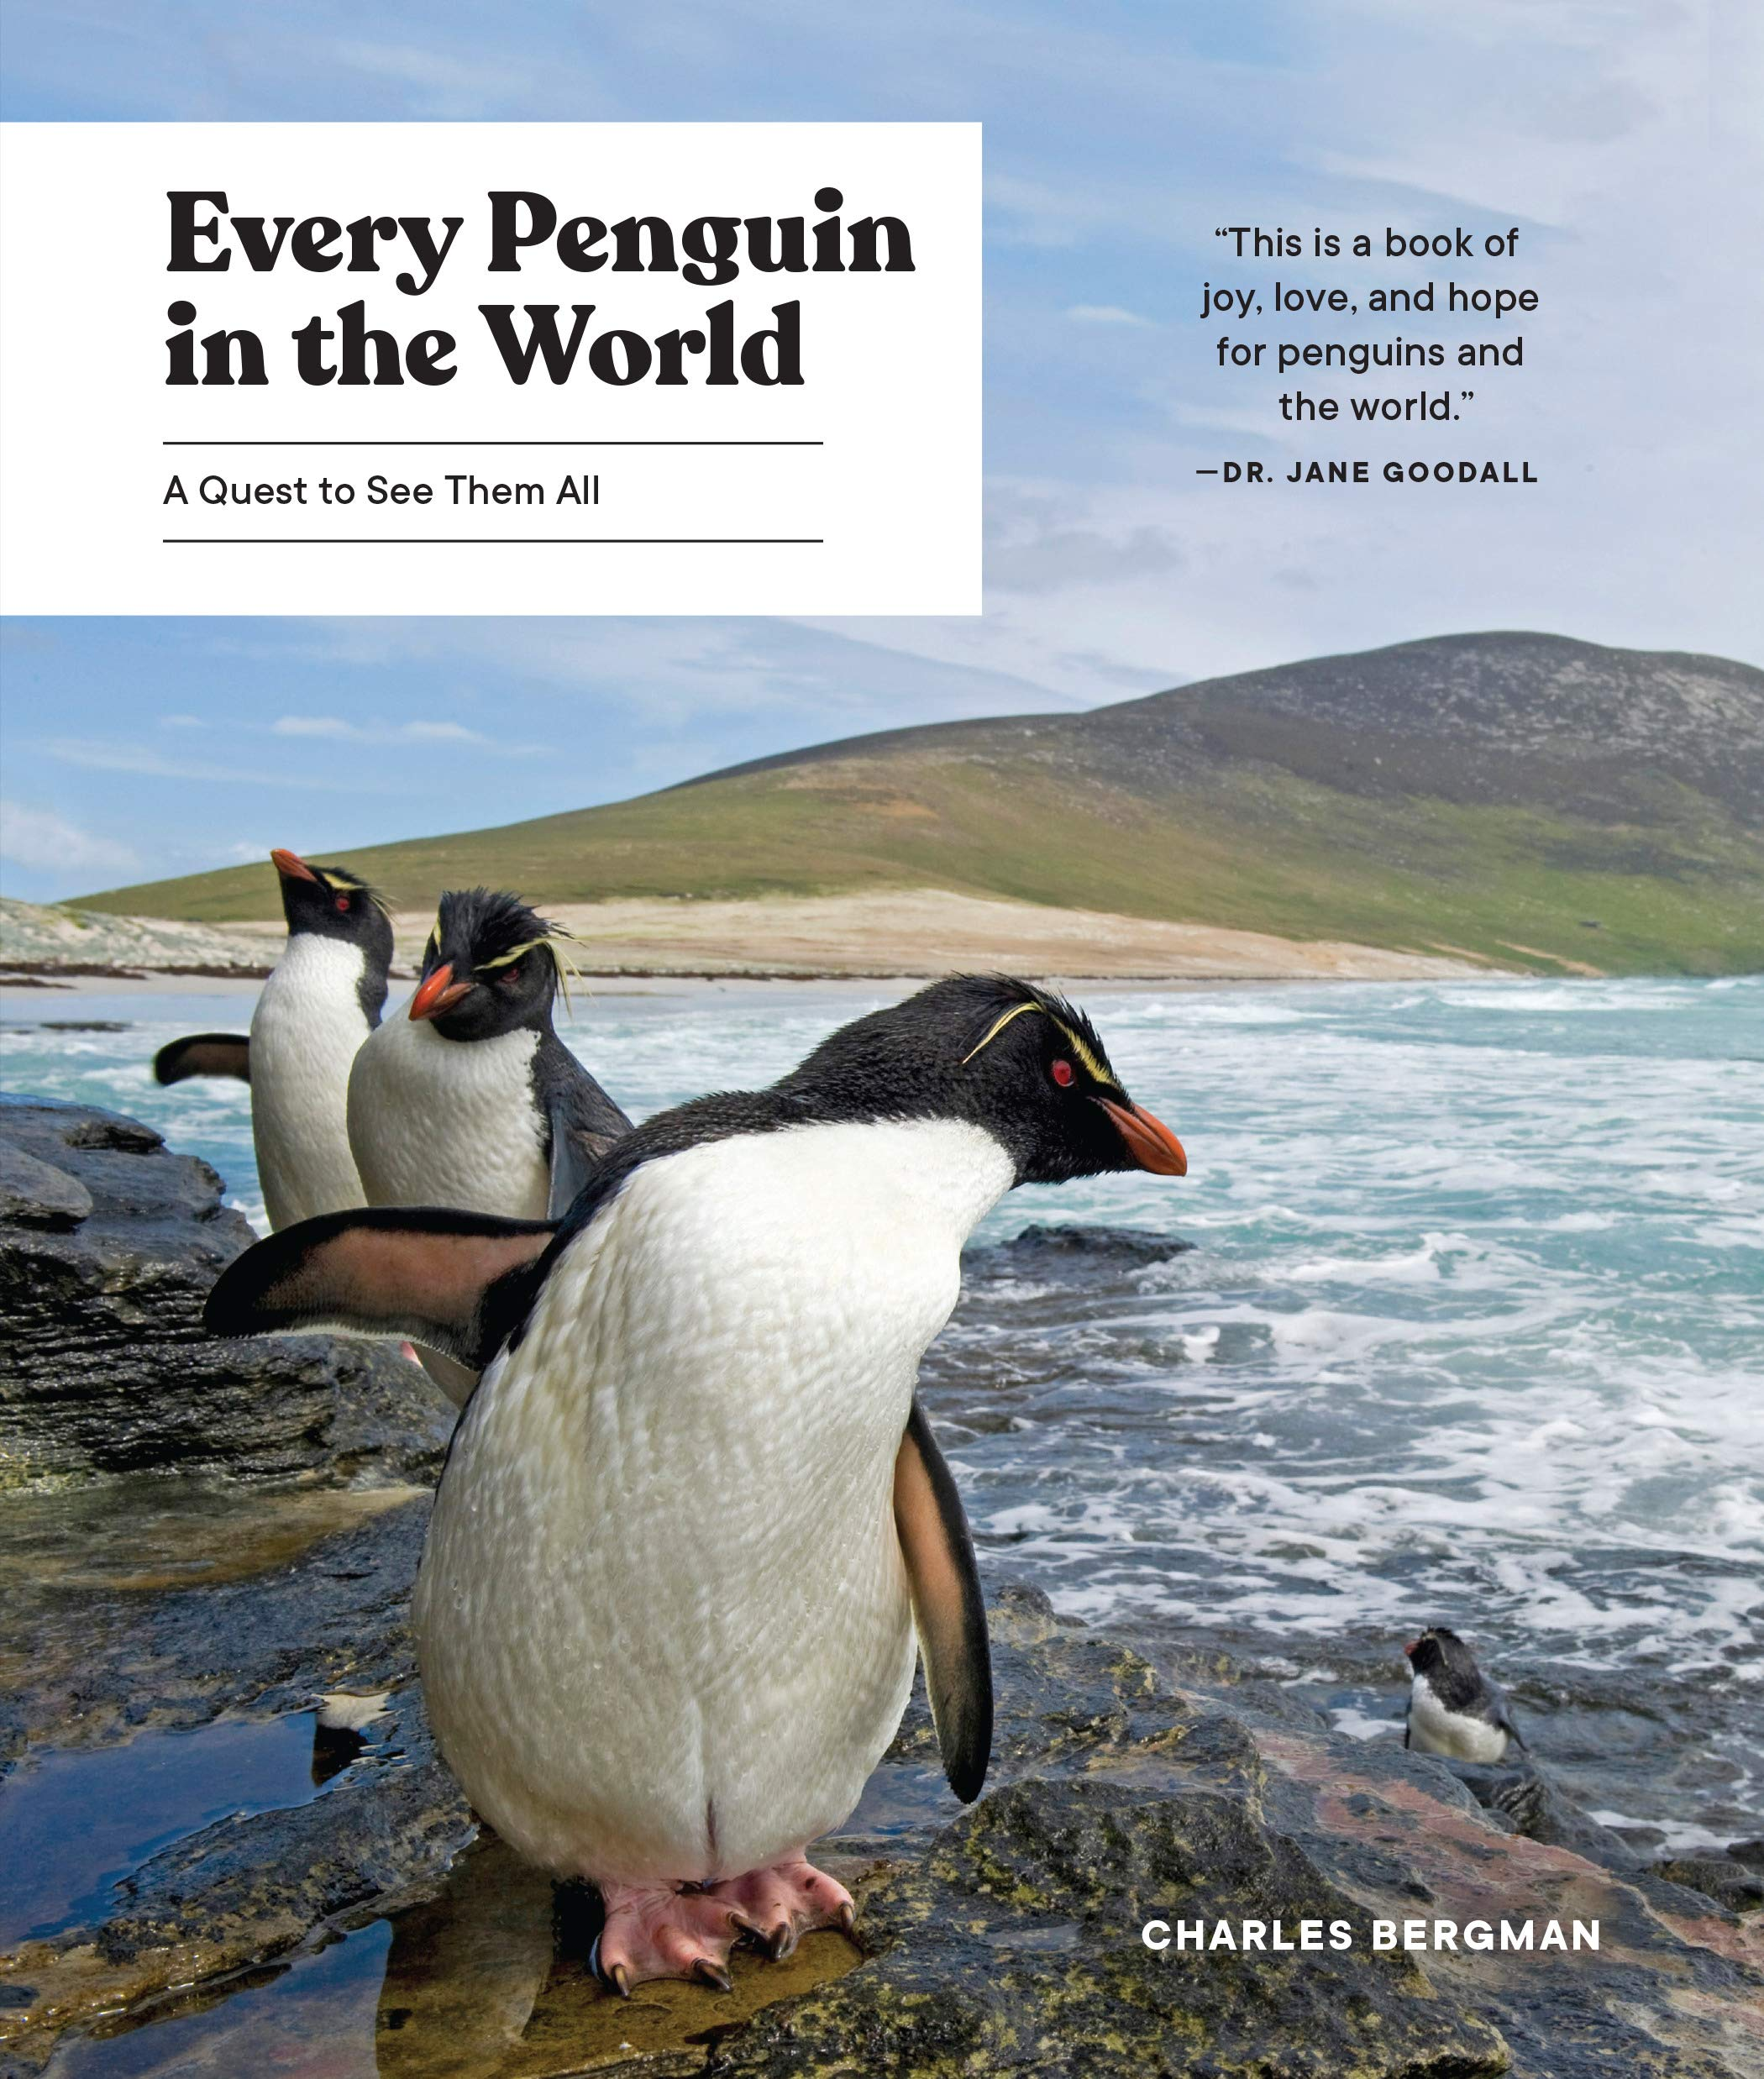 Every Penguin in the World: A Quest to See Them All by Sasquatch Books